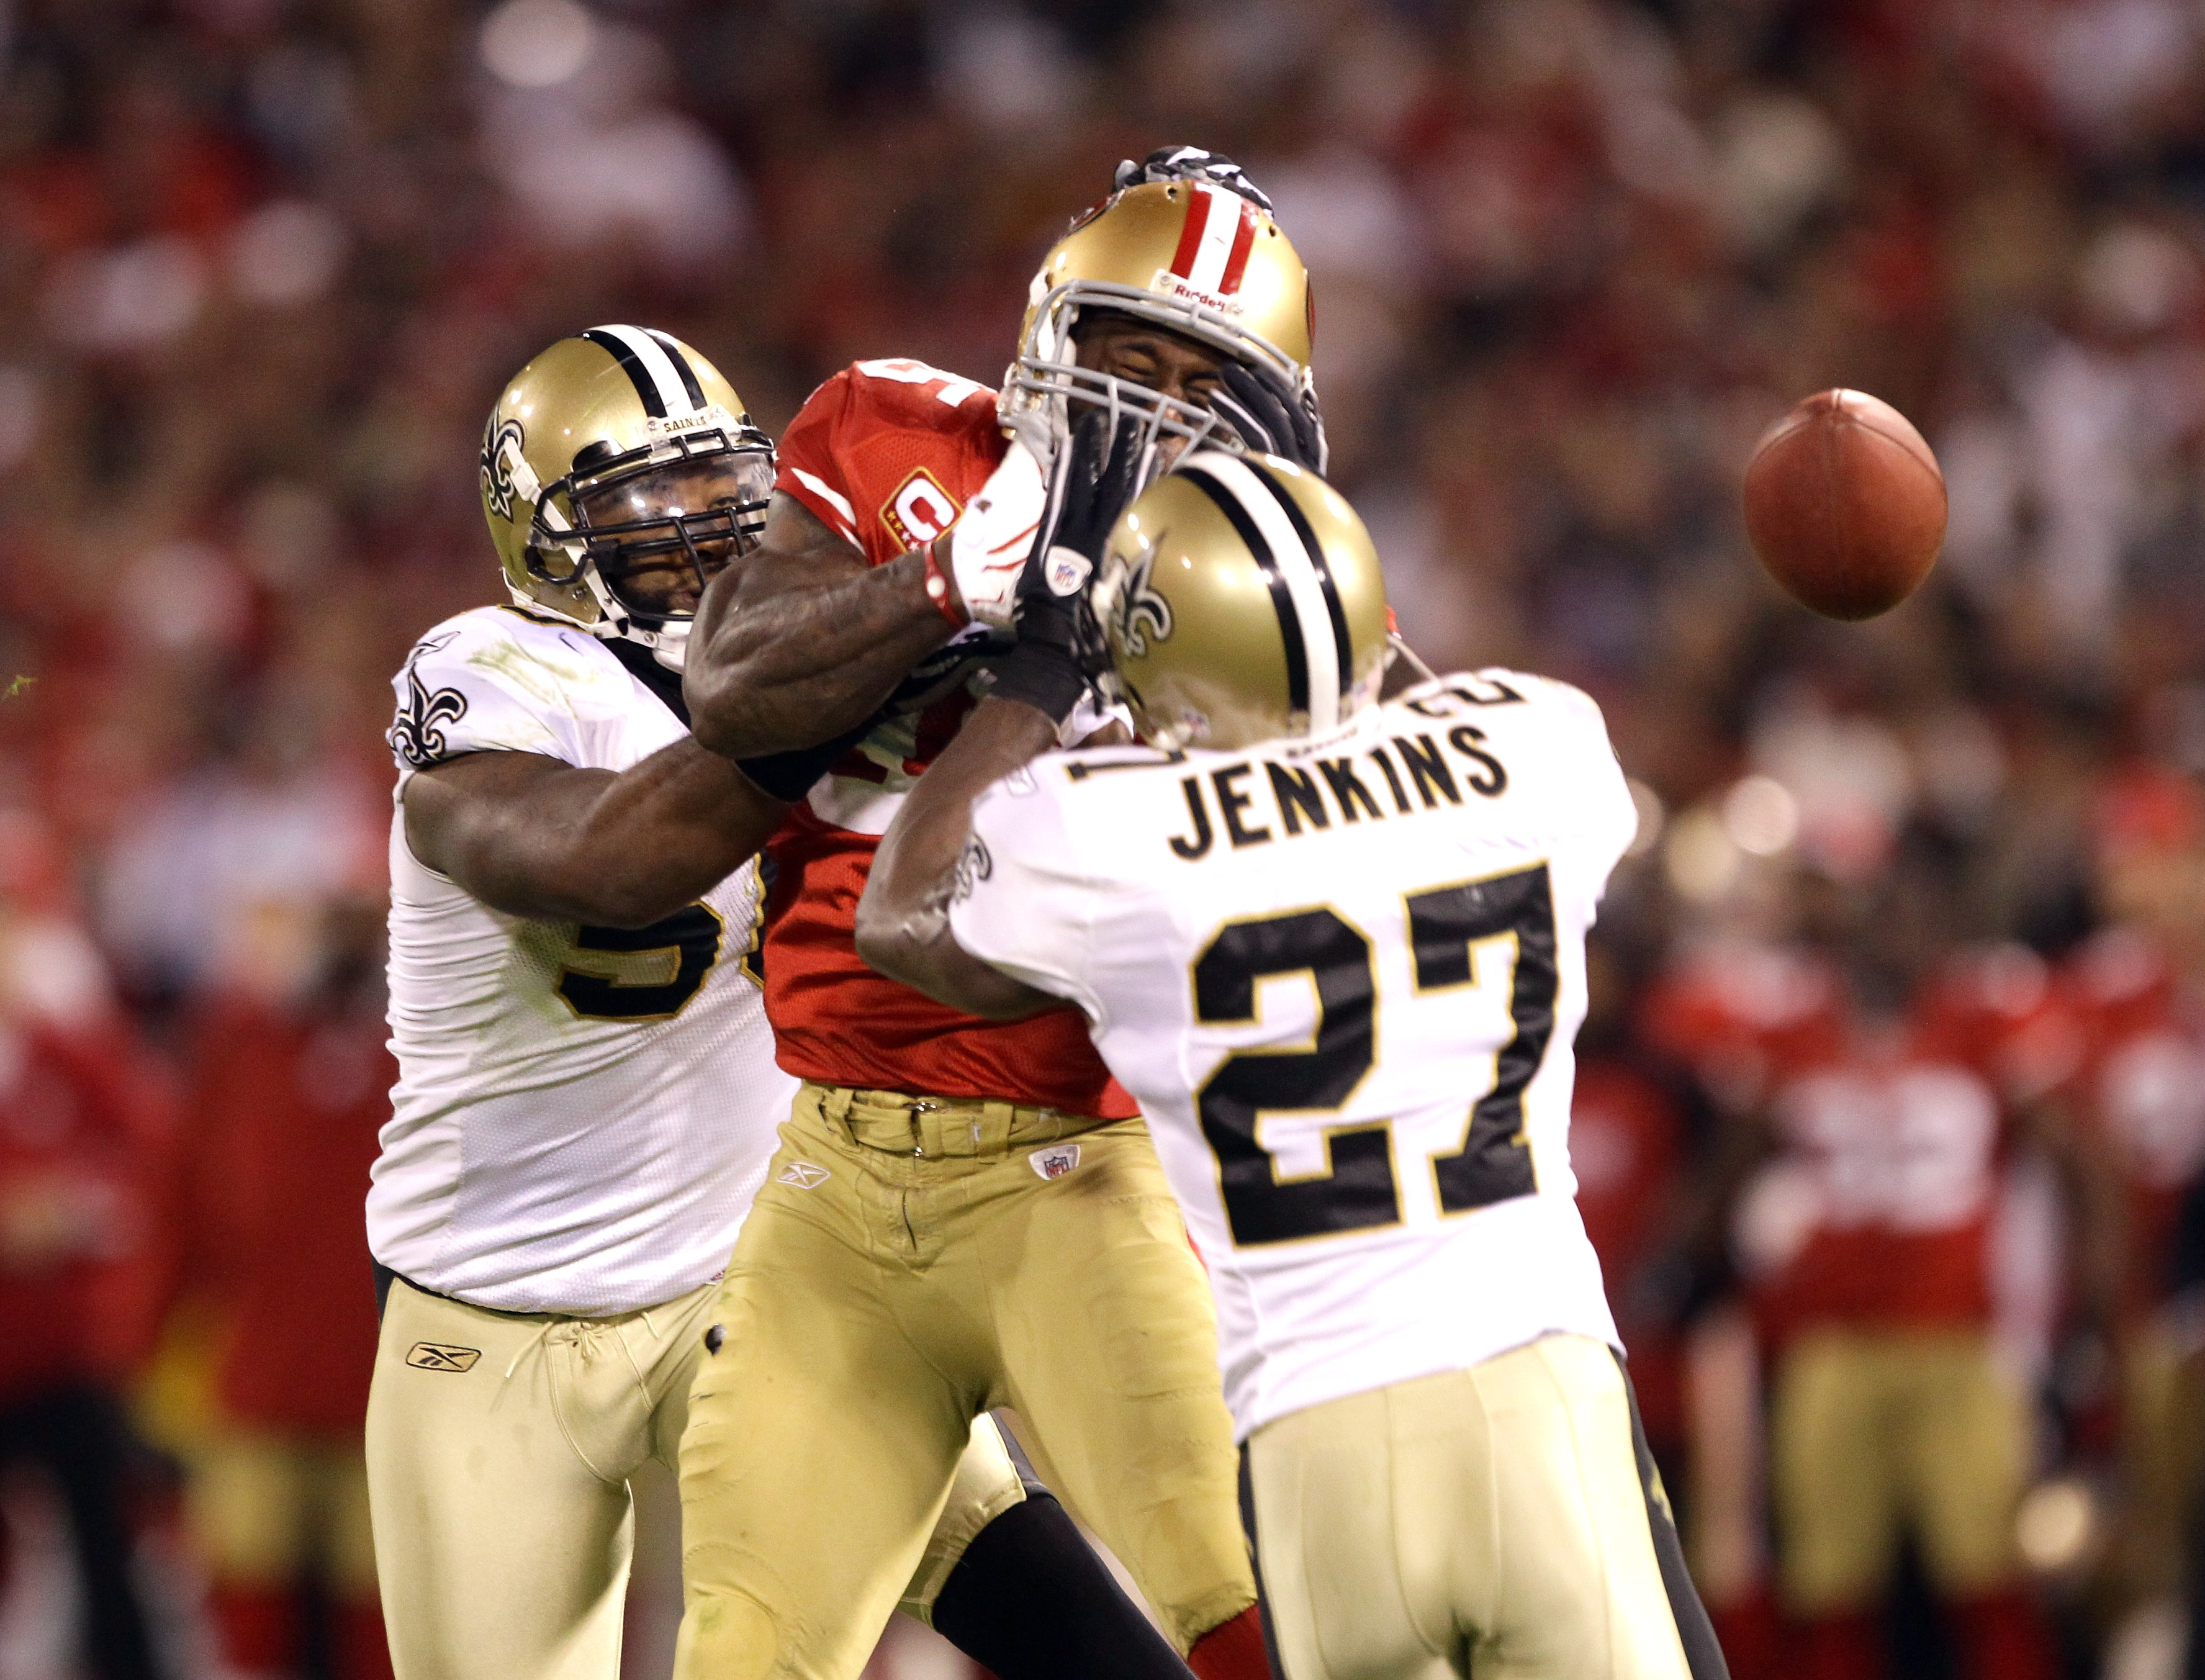 SAN FRANCISCO - SEPTEMBER 20:  Vernon Davis #85 of the San Francisco 49ers loses the ball while defended by Malcolm Jenkins #27 and Marvin Mitchell #50 of the New Orleans Saints at Candlestick Park on September 20, 2010 in San Francisco, California.  (Pho